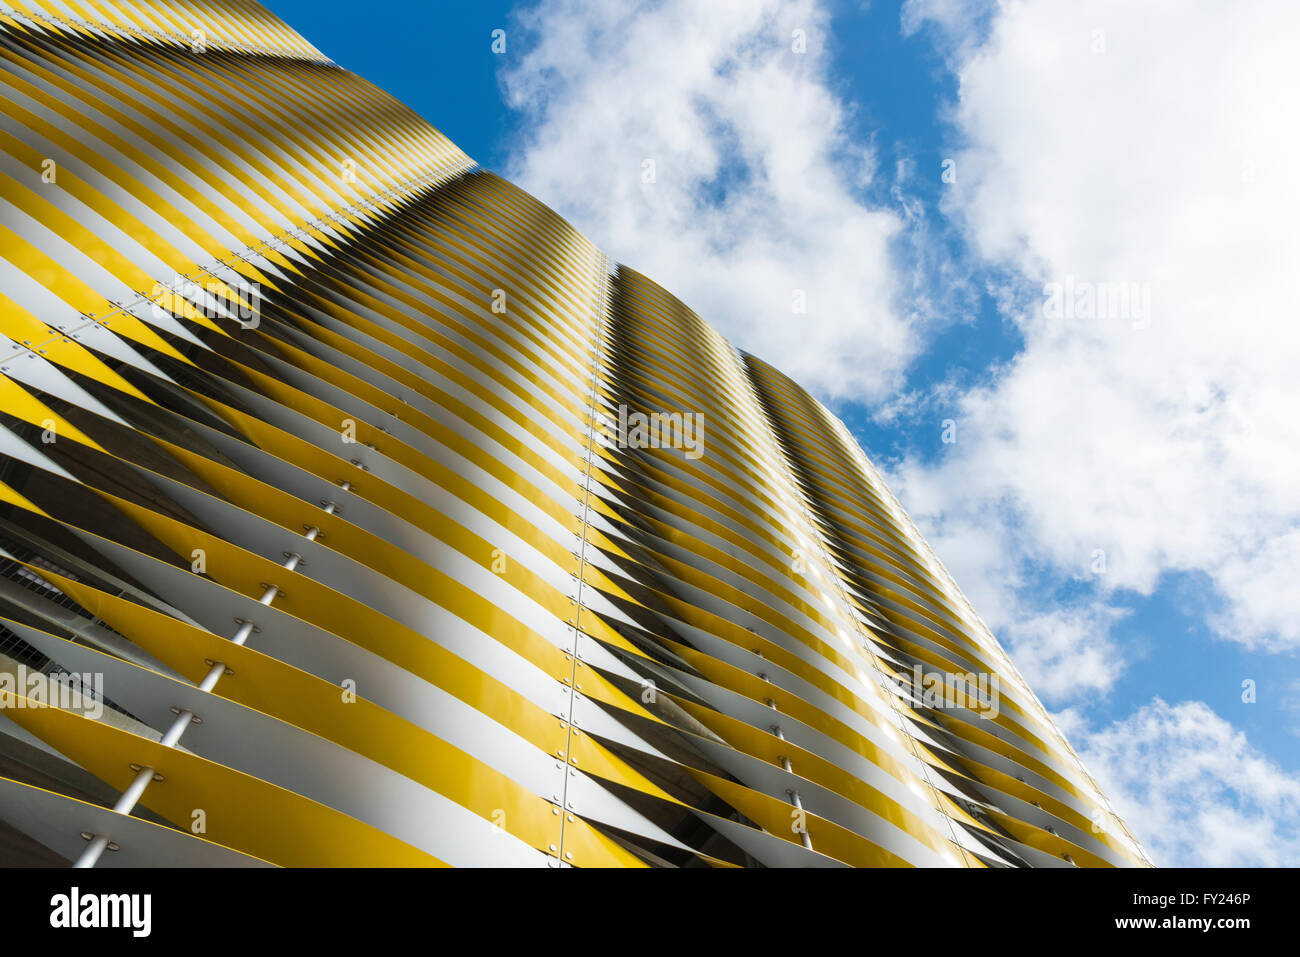 Car Park 2, a new car park, modern architecture, at Addenbrookes hospital Cambridge UK Stock Photo